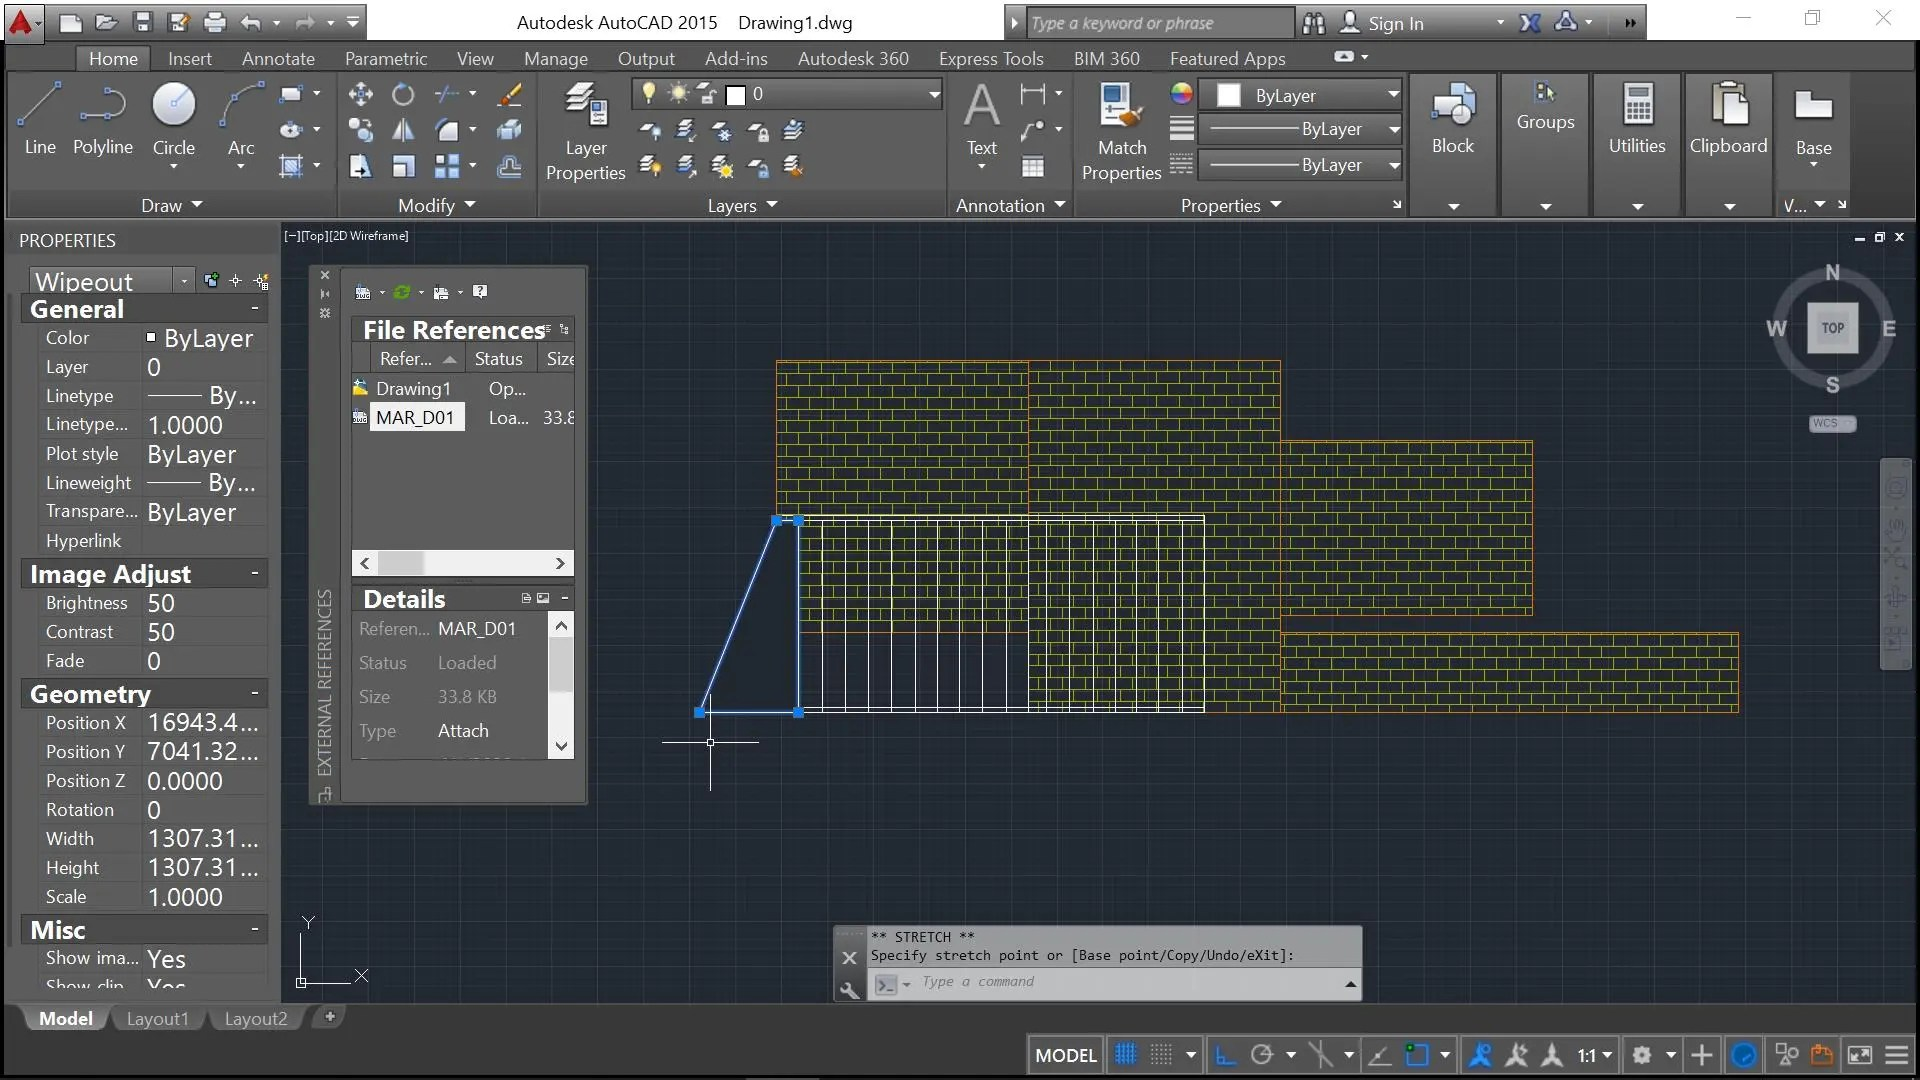 Wipeout tool Autocad